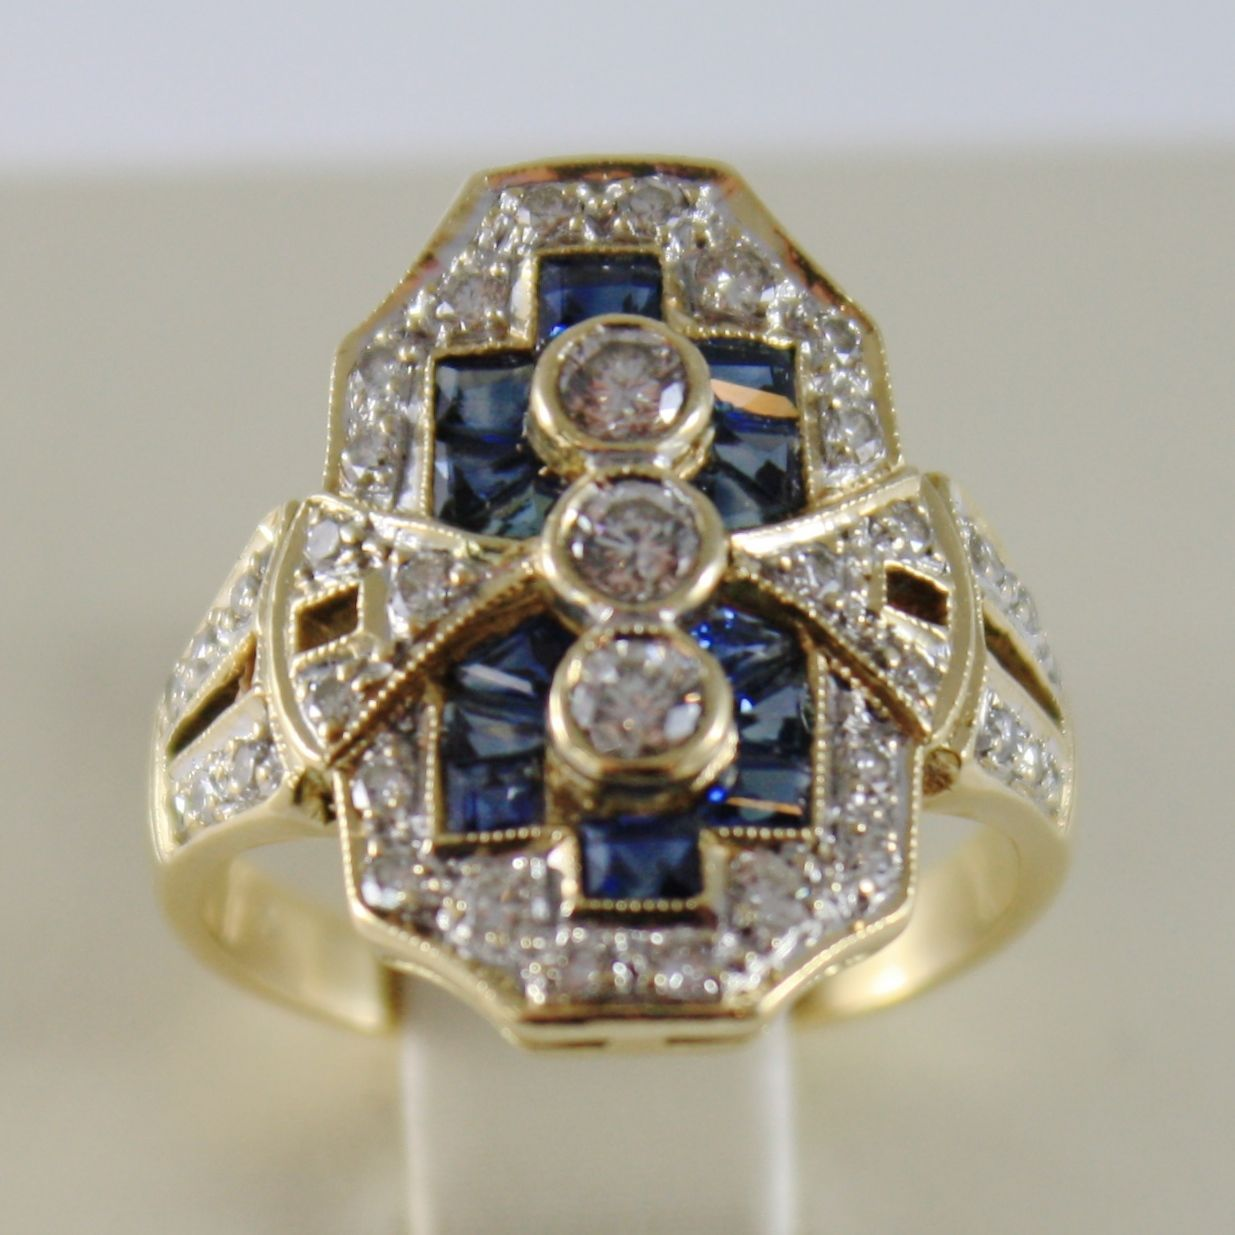 18K YELLOW GOLD BAND RING DIAMOND SAPPHIRE VINTAGE VICTORIAN STYLE MADE IN ITALY